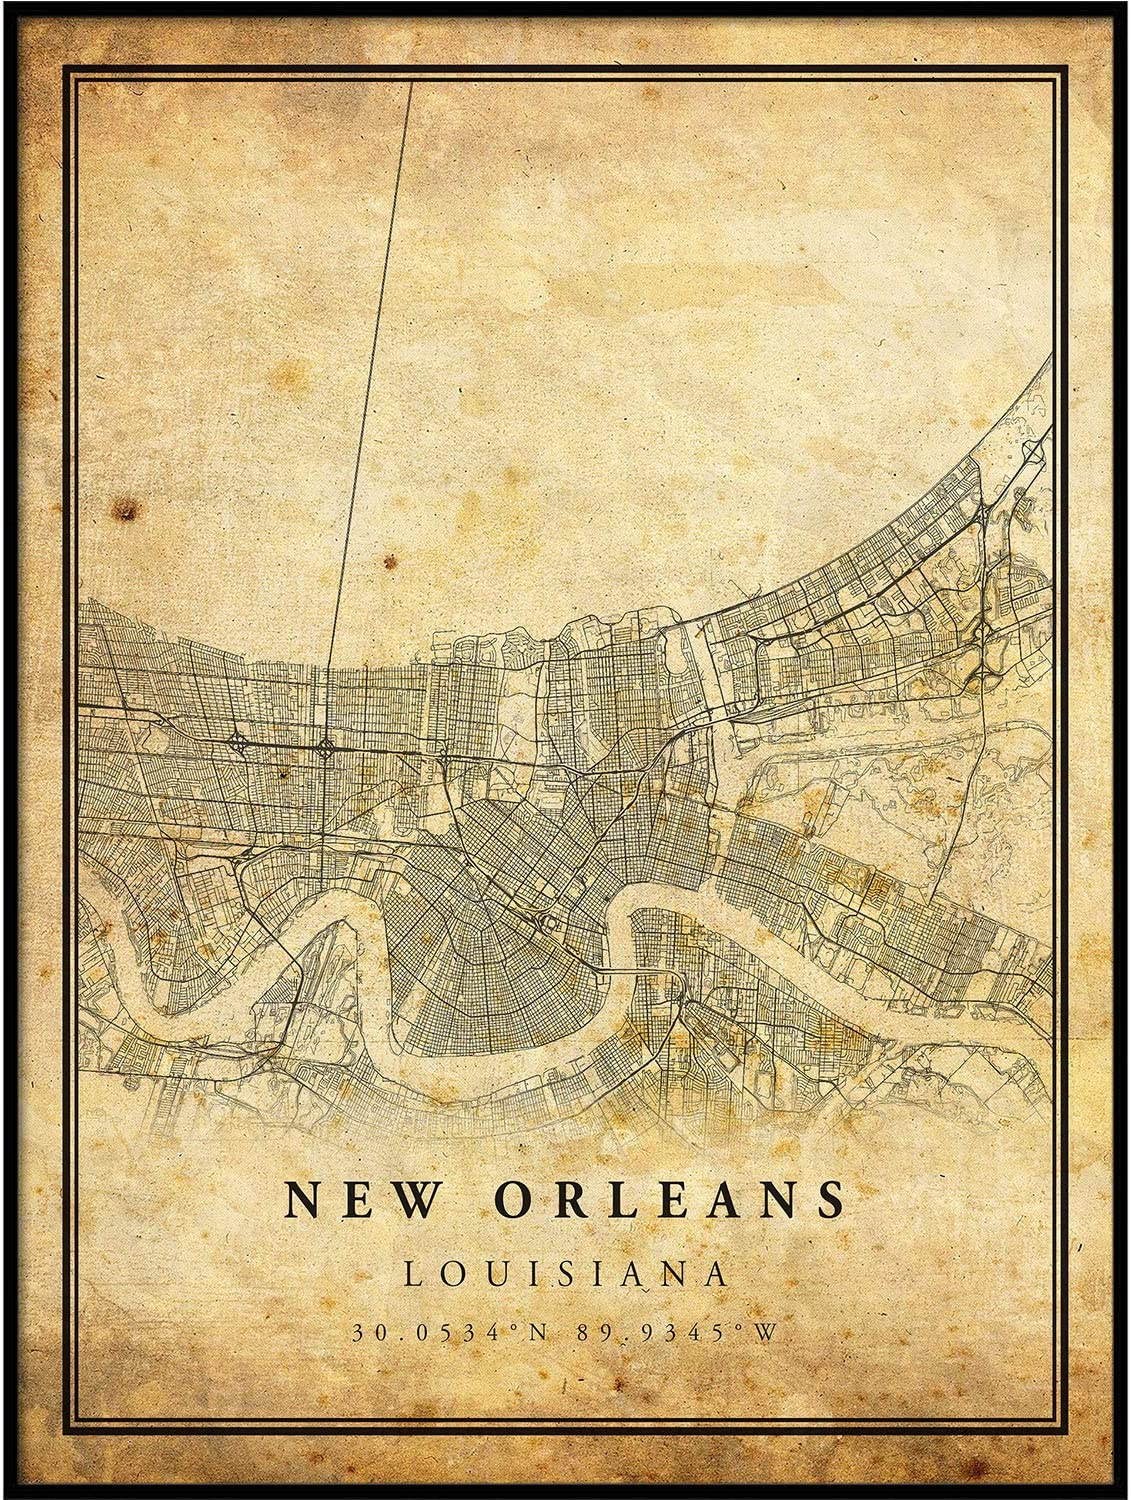 New Orleans map Vintage Style Poster Print | Old City Artwork Prints | Antique Style Home Decor | Louisiana Wall Art Gift | map to Love 8.5x11